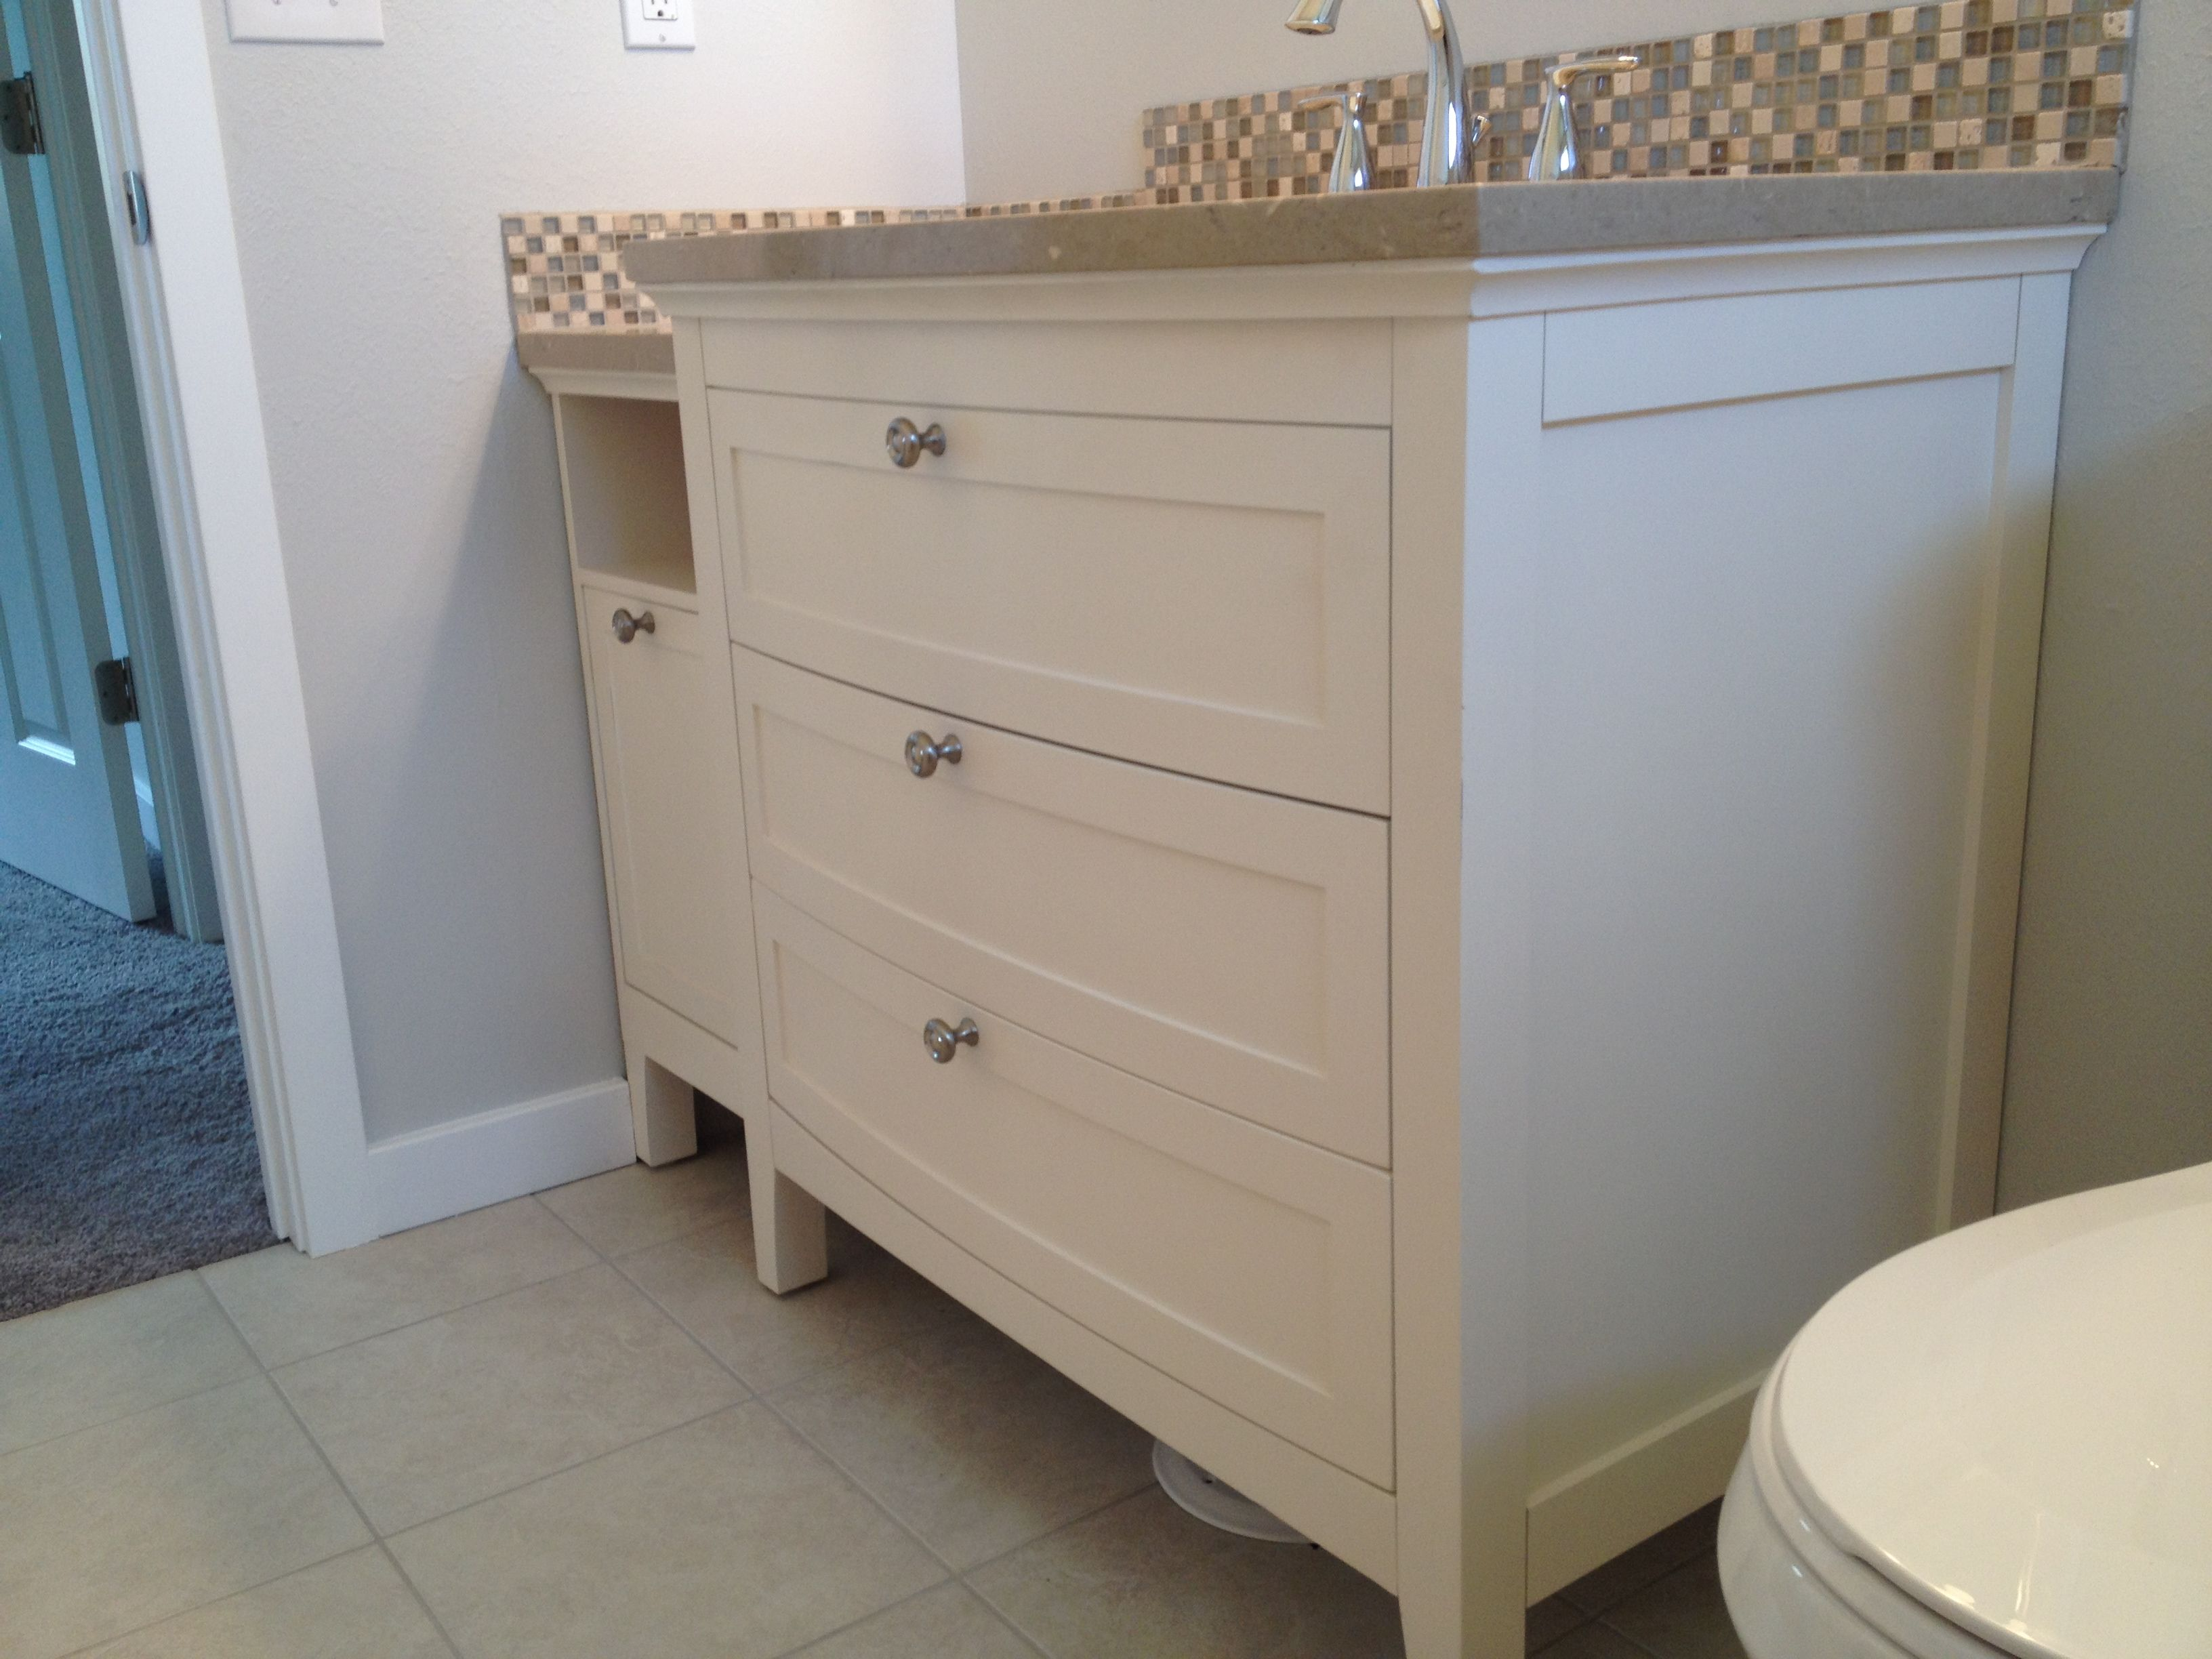 Need extra storage in your bathroom? This bathroom vanity has pull out drawers, looks fabulous and you can add an additional stand as shown for extra counter space too. Real Estate in Boise, Idaho